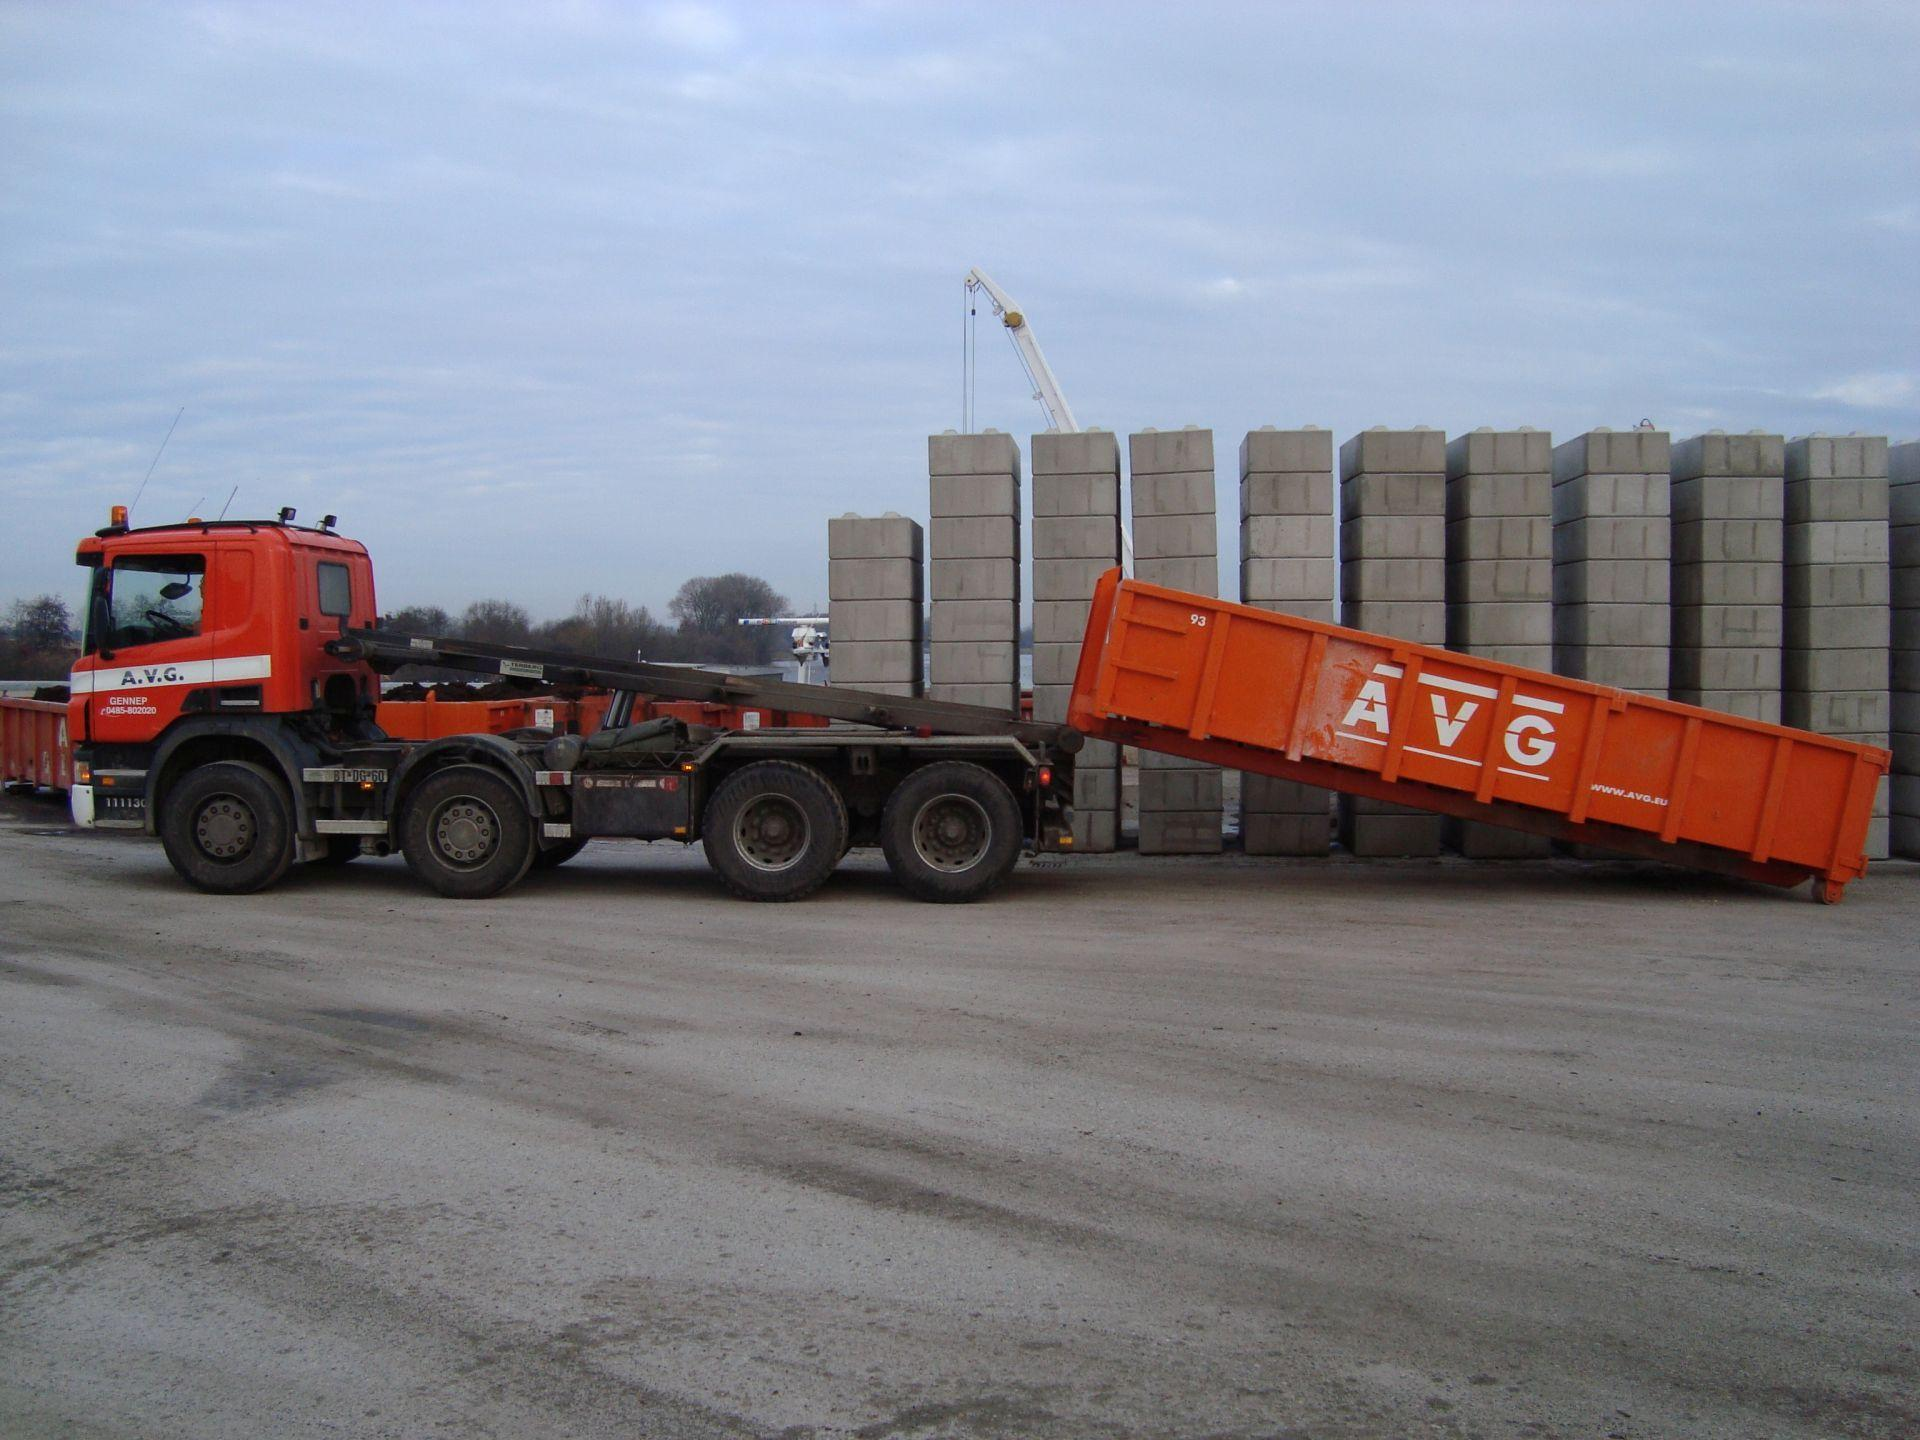 lange-container-9-avg-bouwstoffen